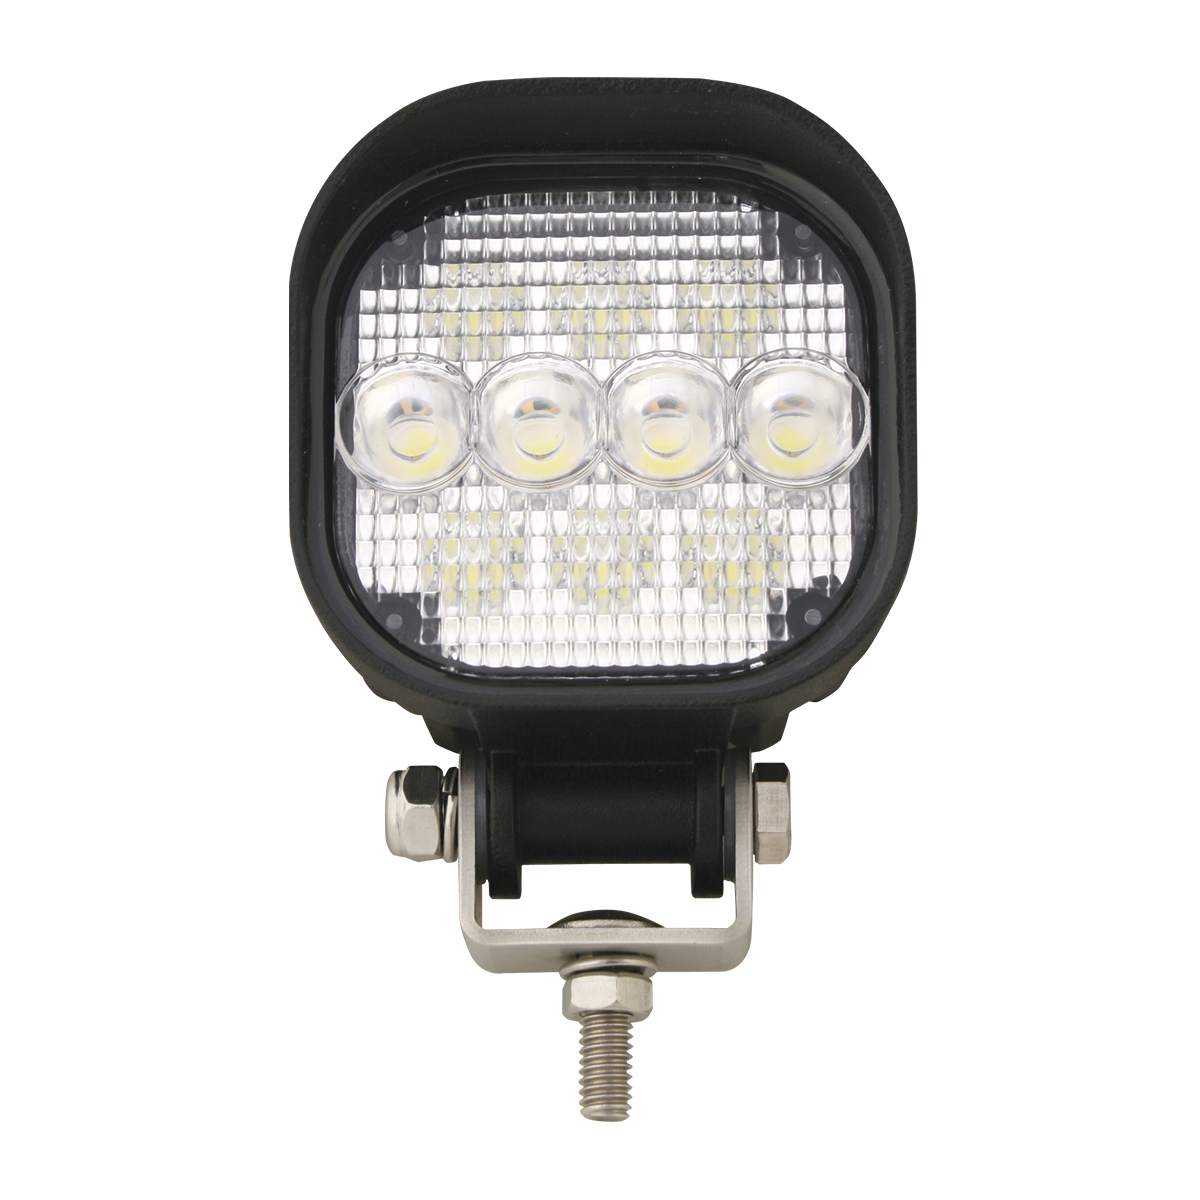 76352 Small High Power LED Work Light